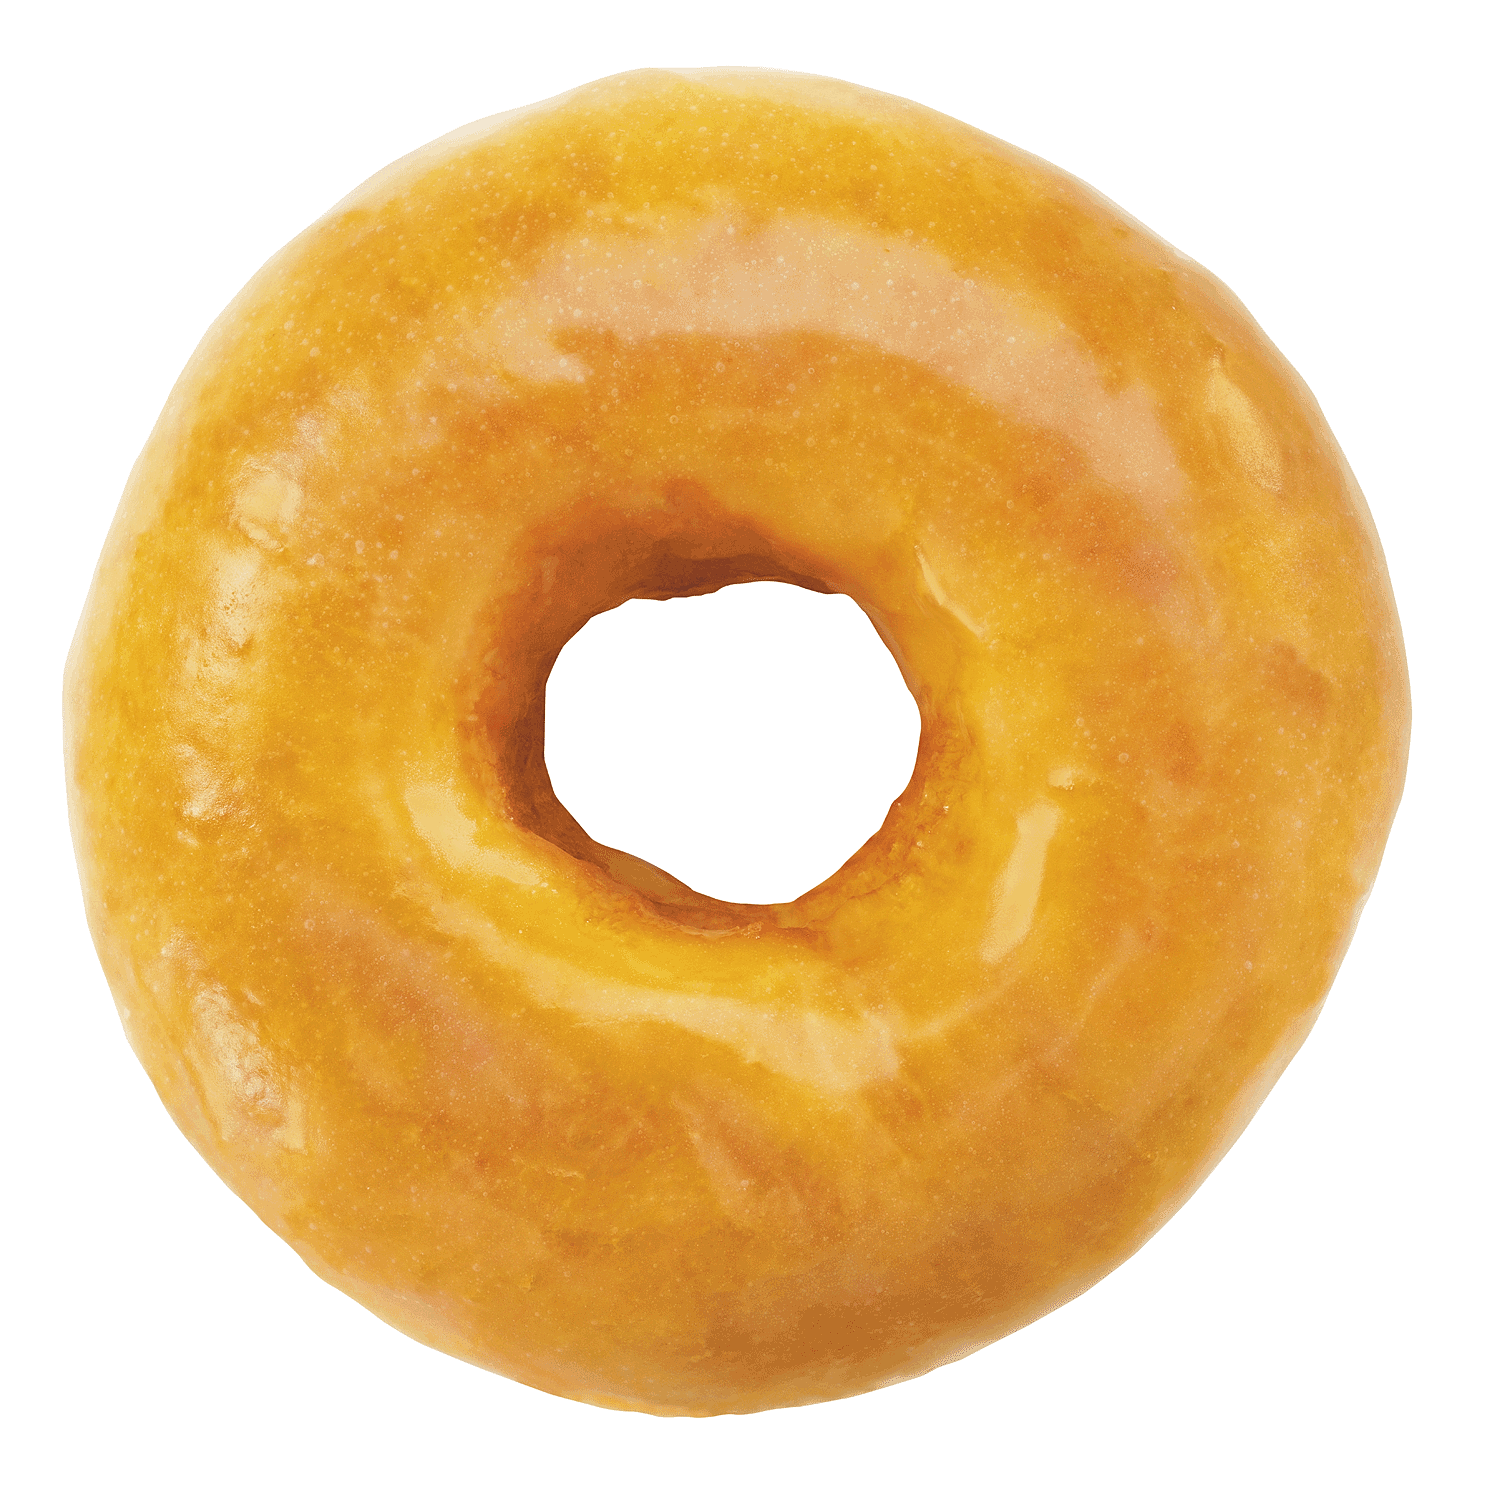 Chocolate Glazed Donut Dunkin Donuts images